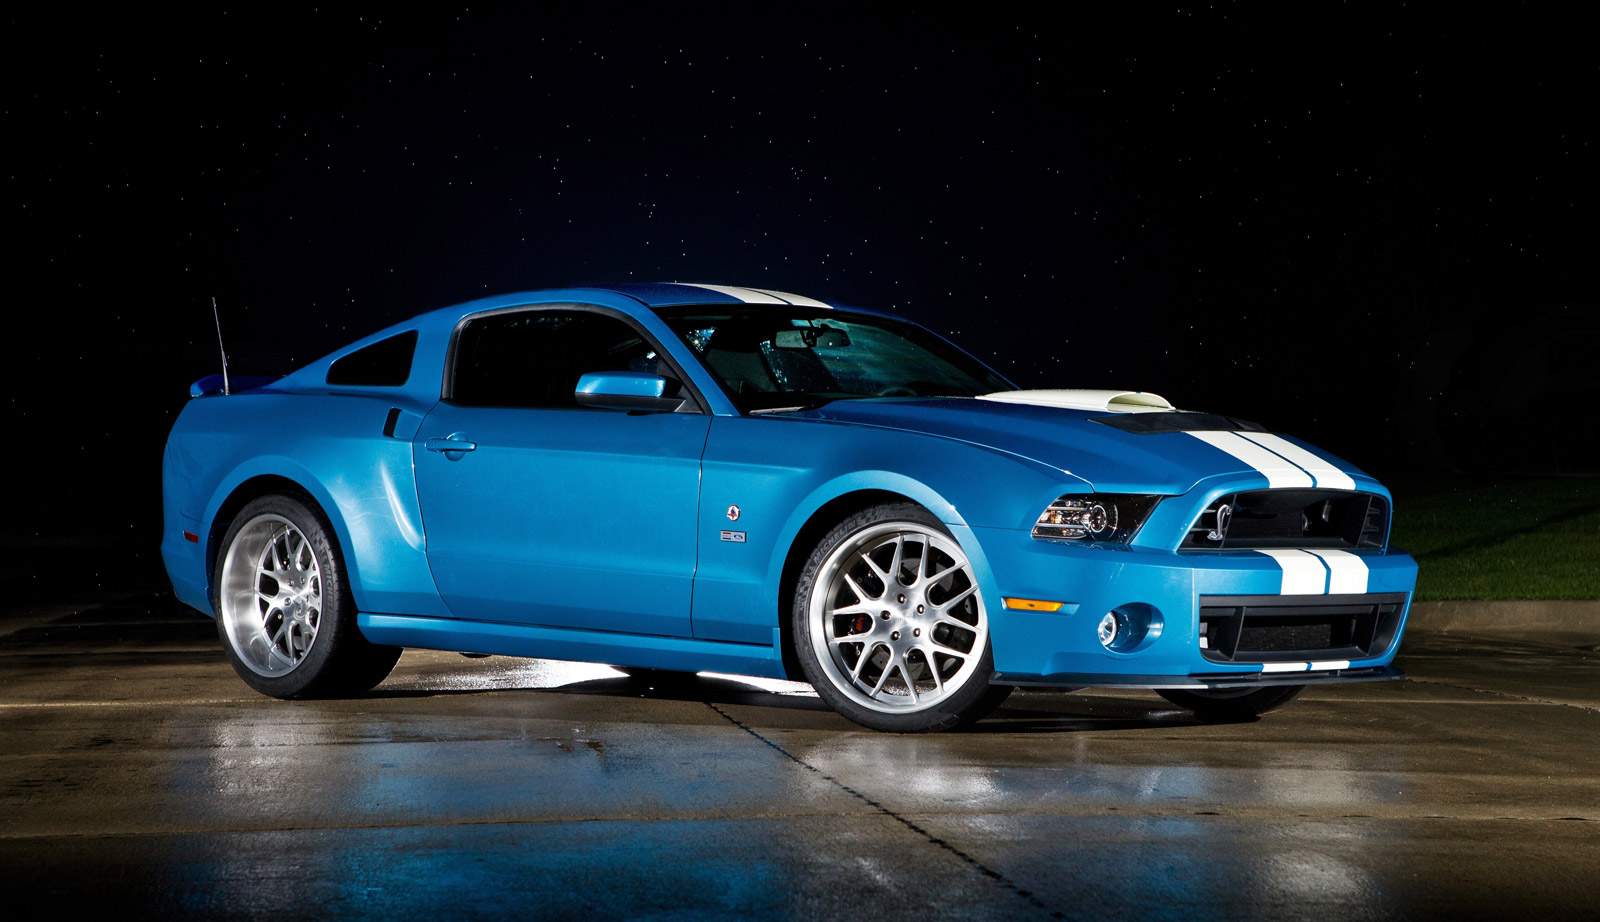 Ford Mustang Gt500 Shelby Cobra